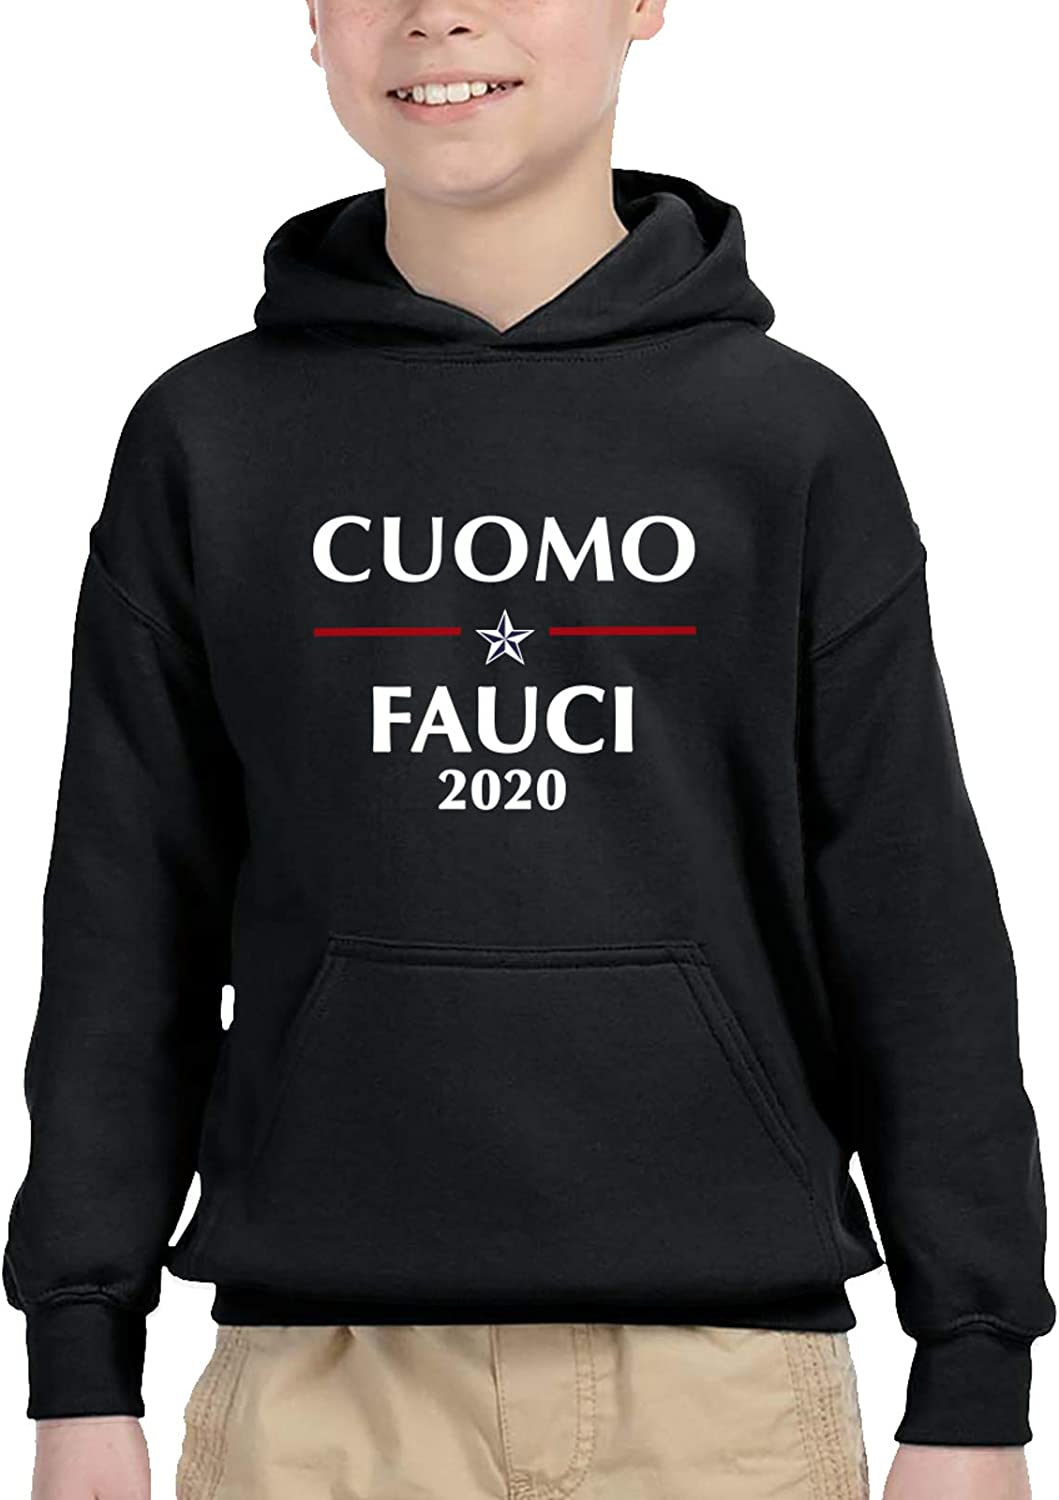 Cuomo Fauci 2020 Teen Hooded Sweater Casual Sweater For Baby Boys Girls